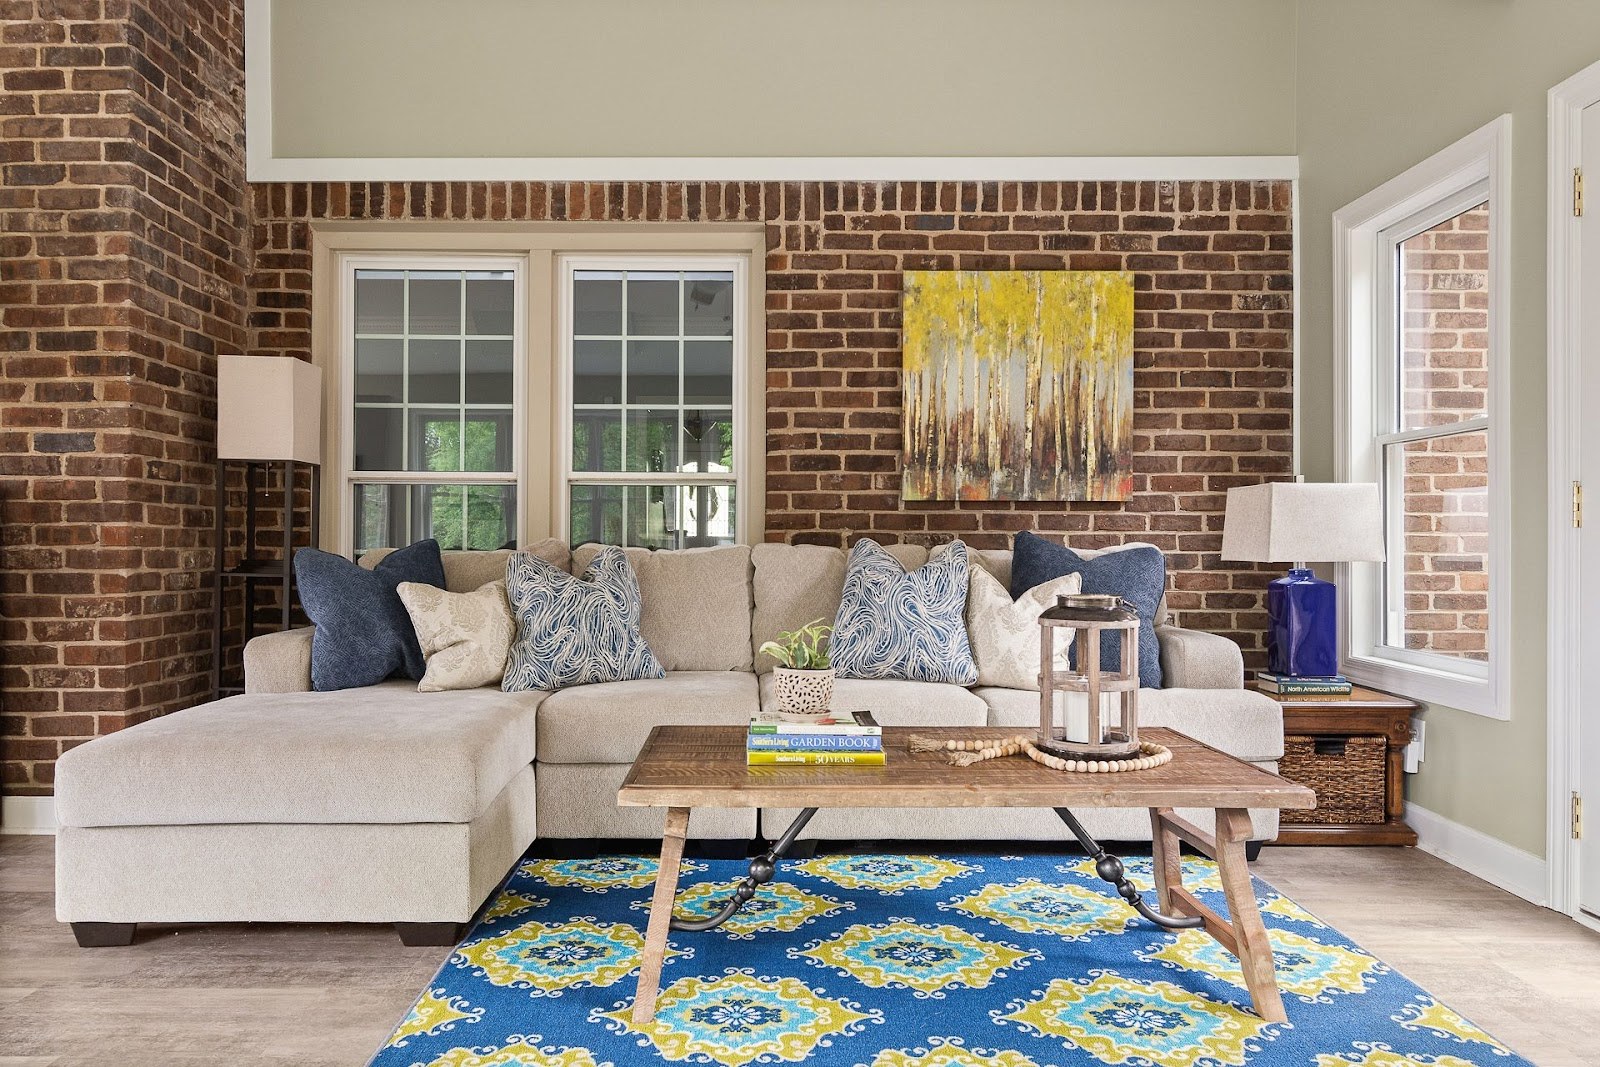 finished sunroom lebanon tennessee brick neutral paint lots of sunlight new flooring remodel art blue yellow traditional